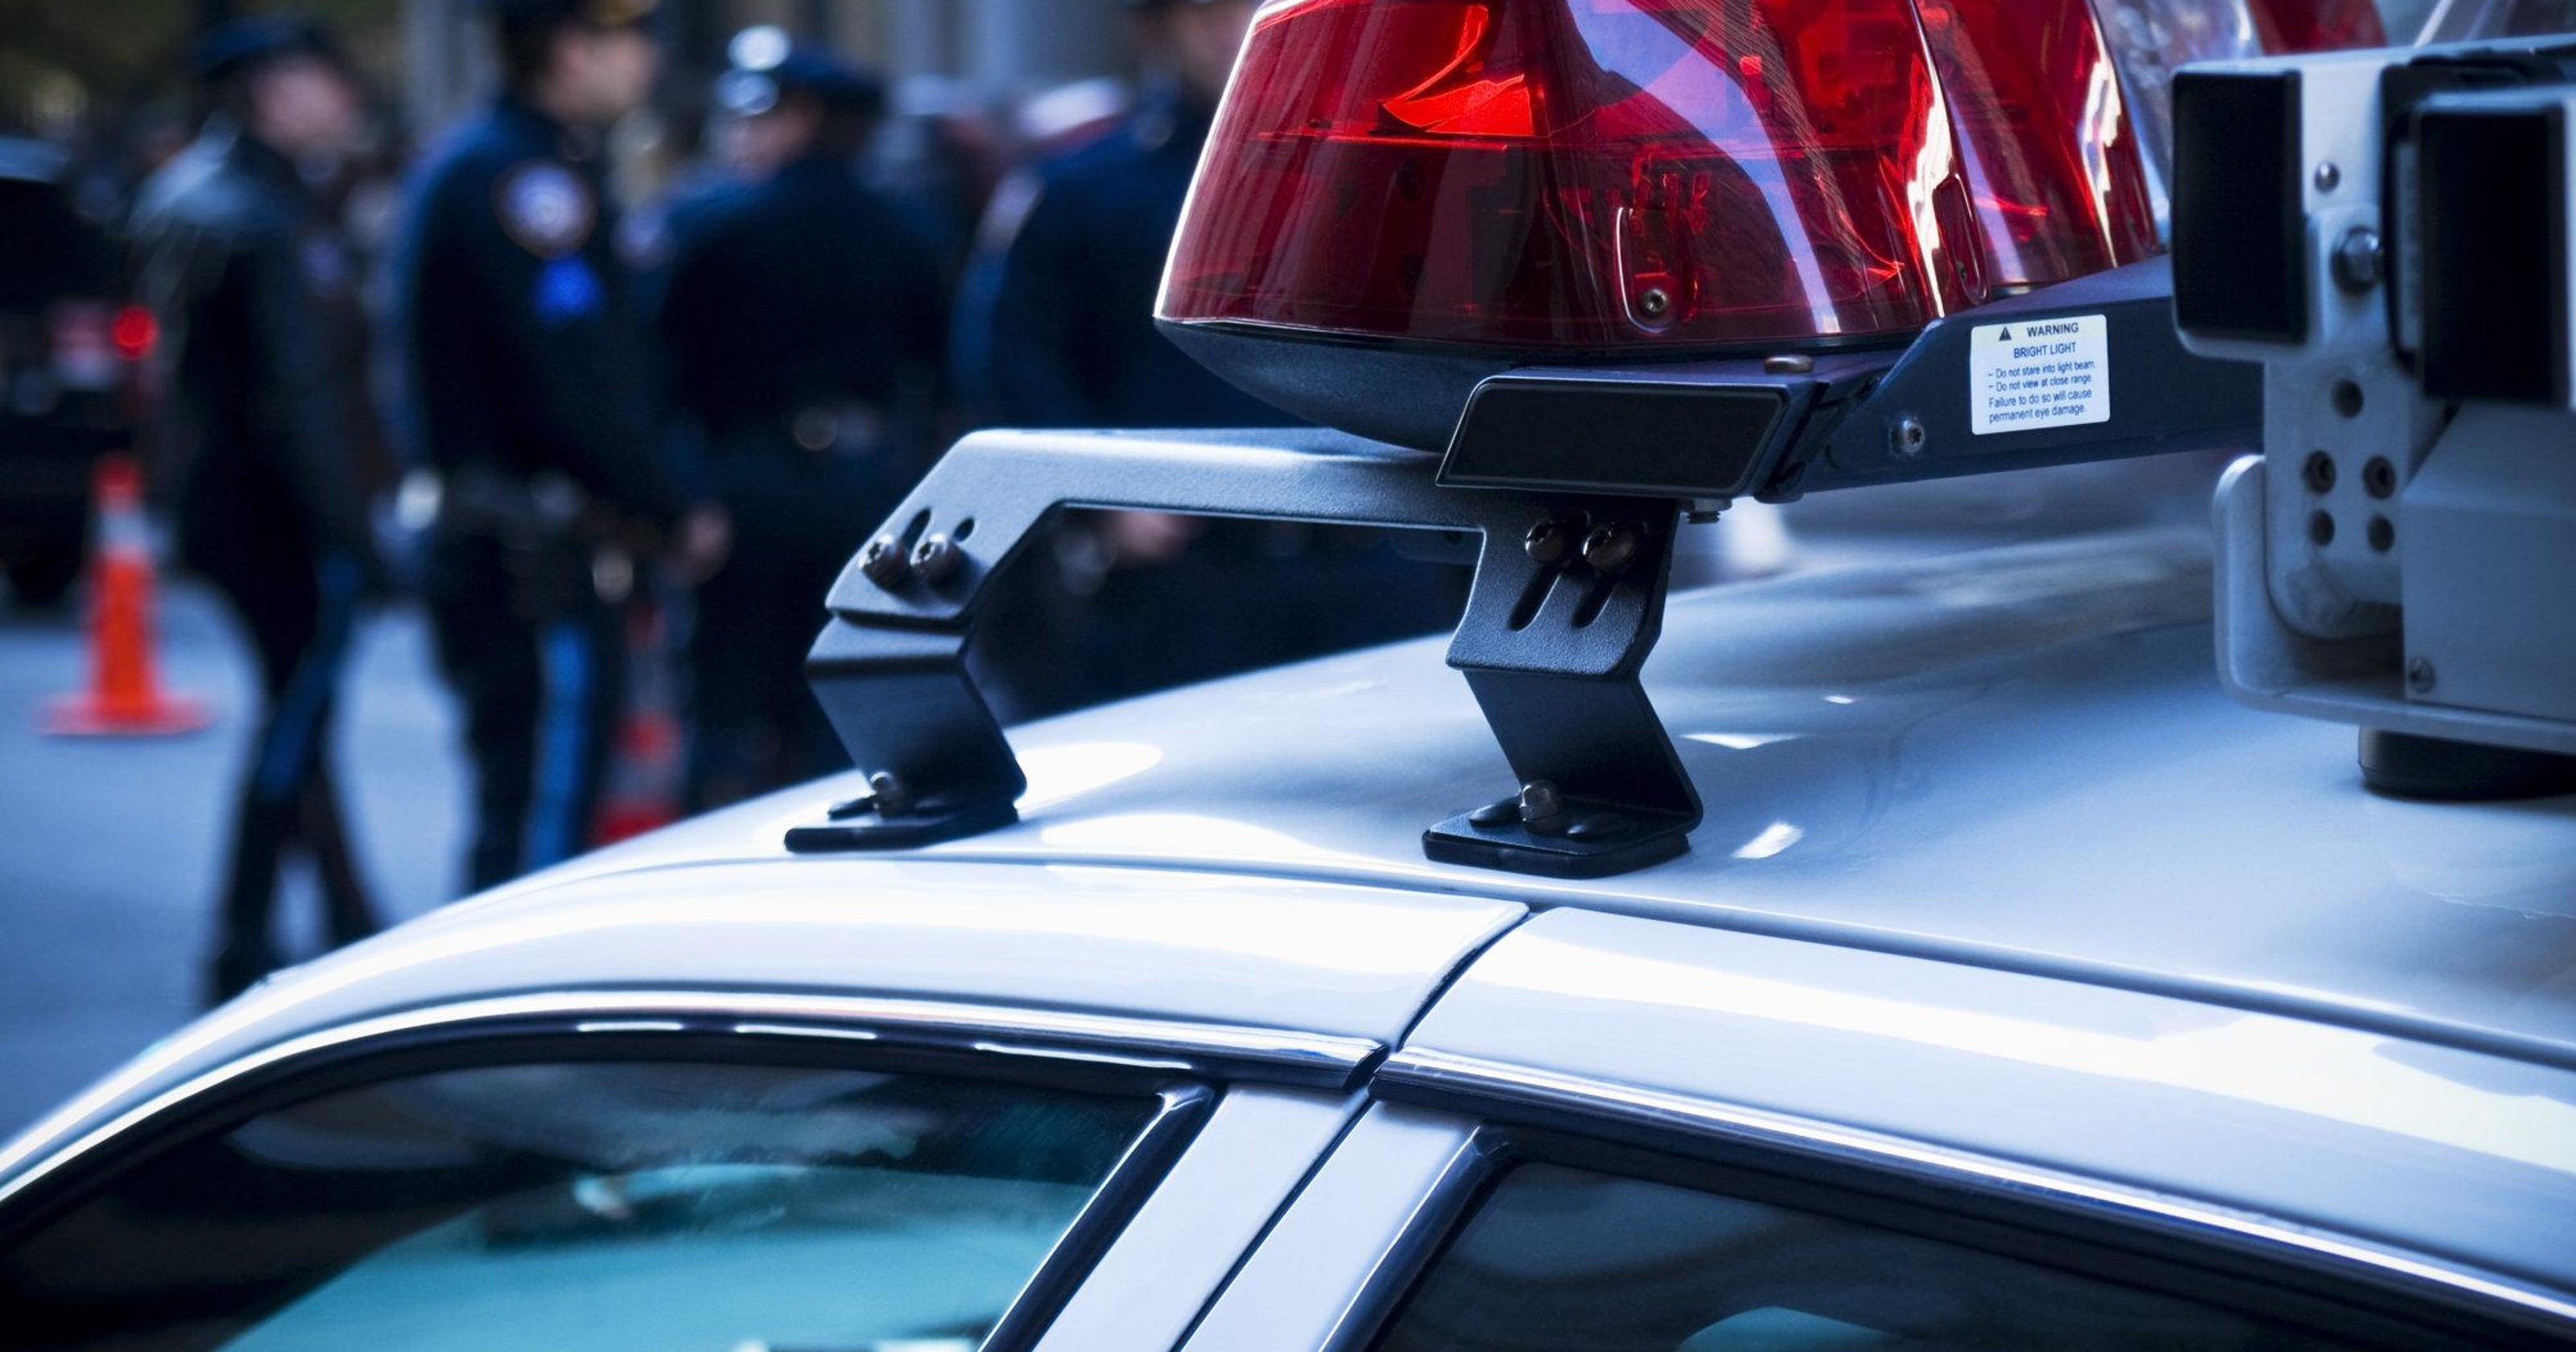 police blotter tax fraud in long hill dwi at cvs in sparta